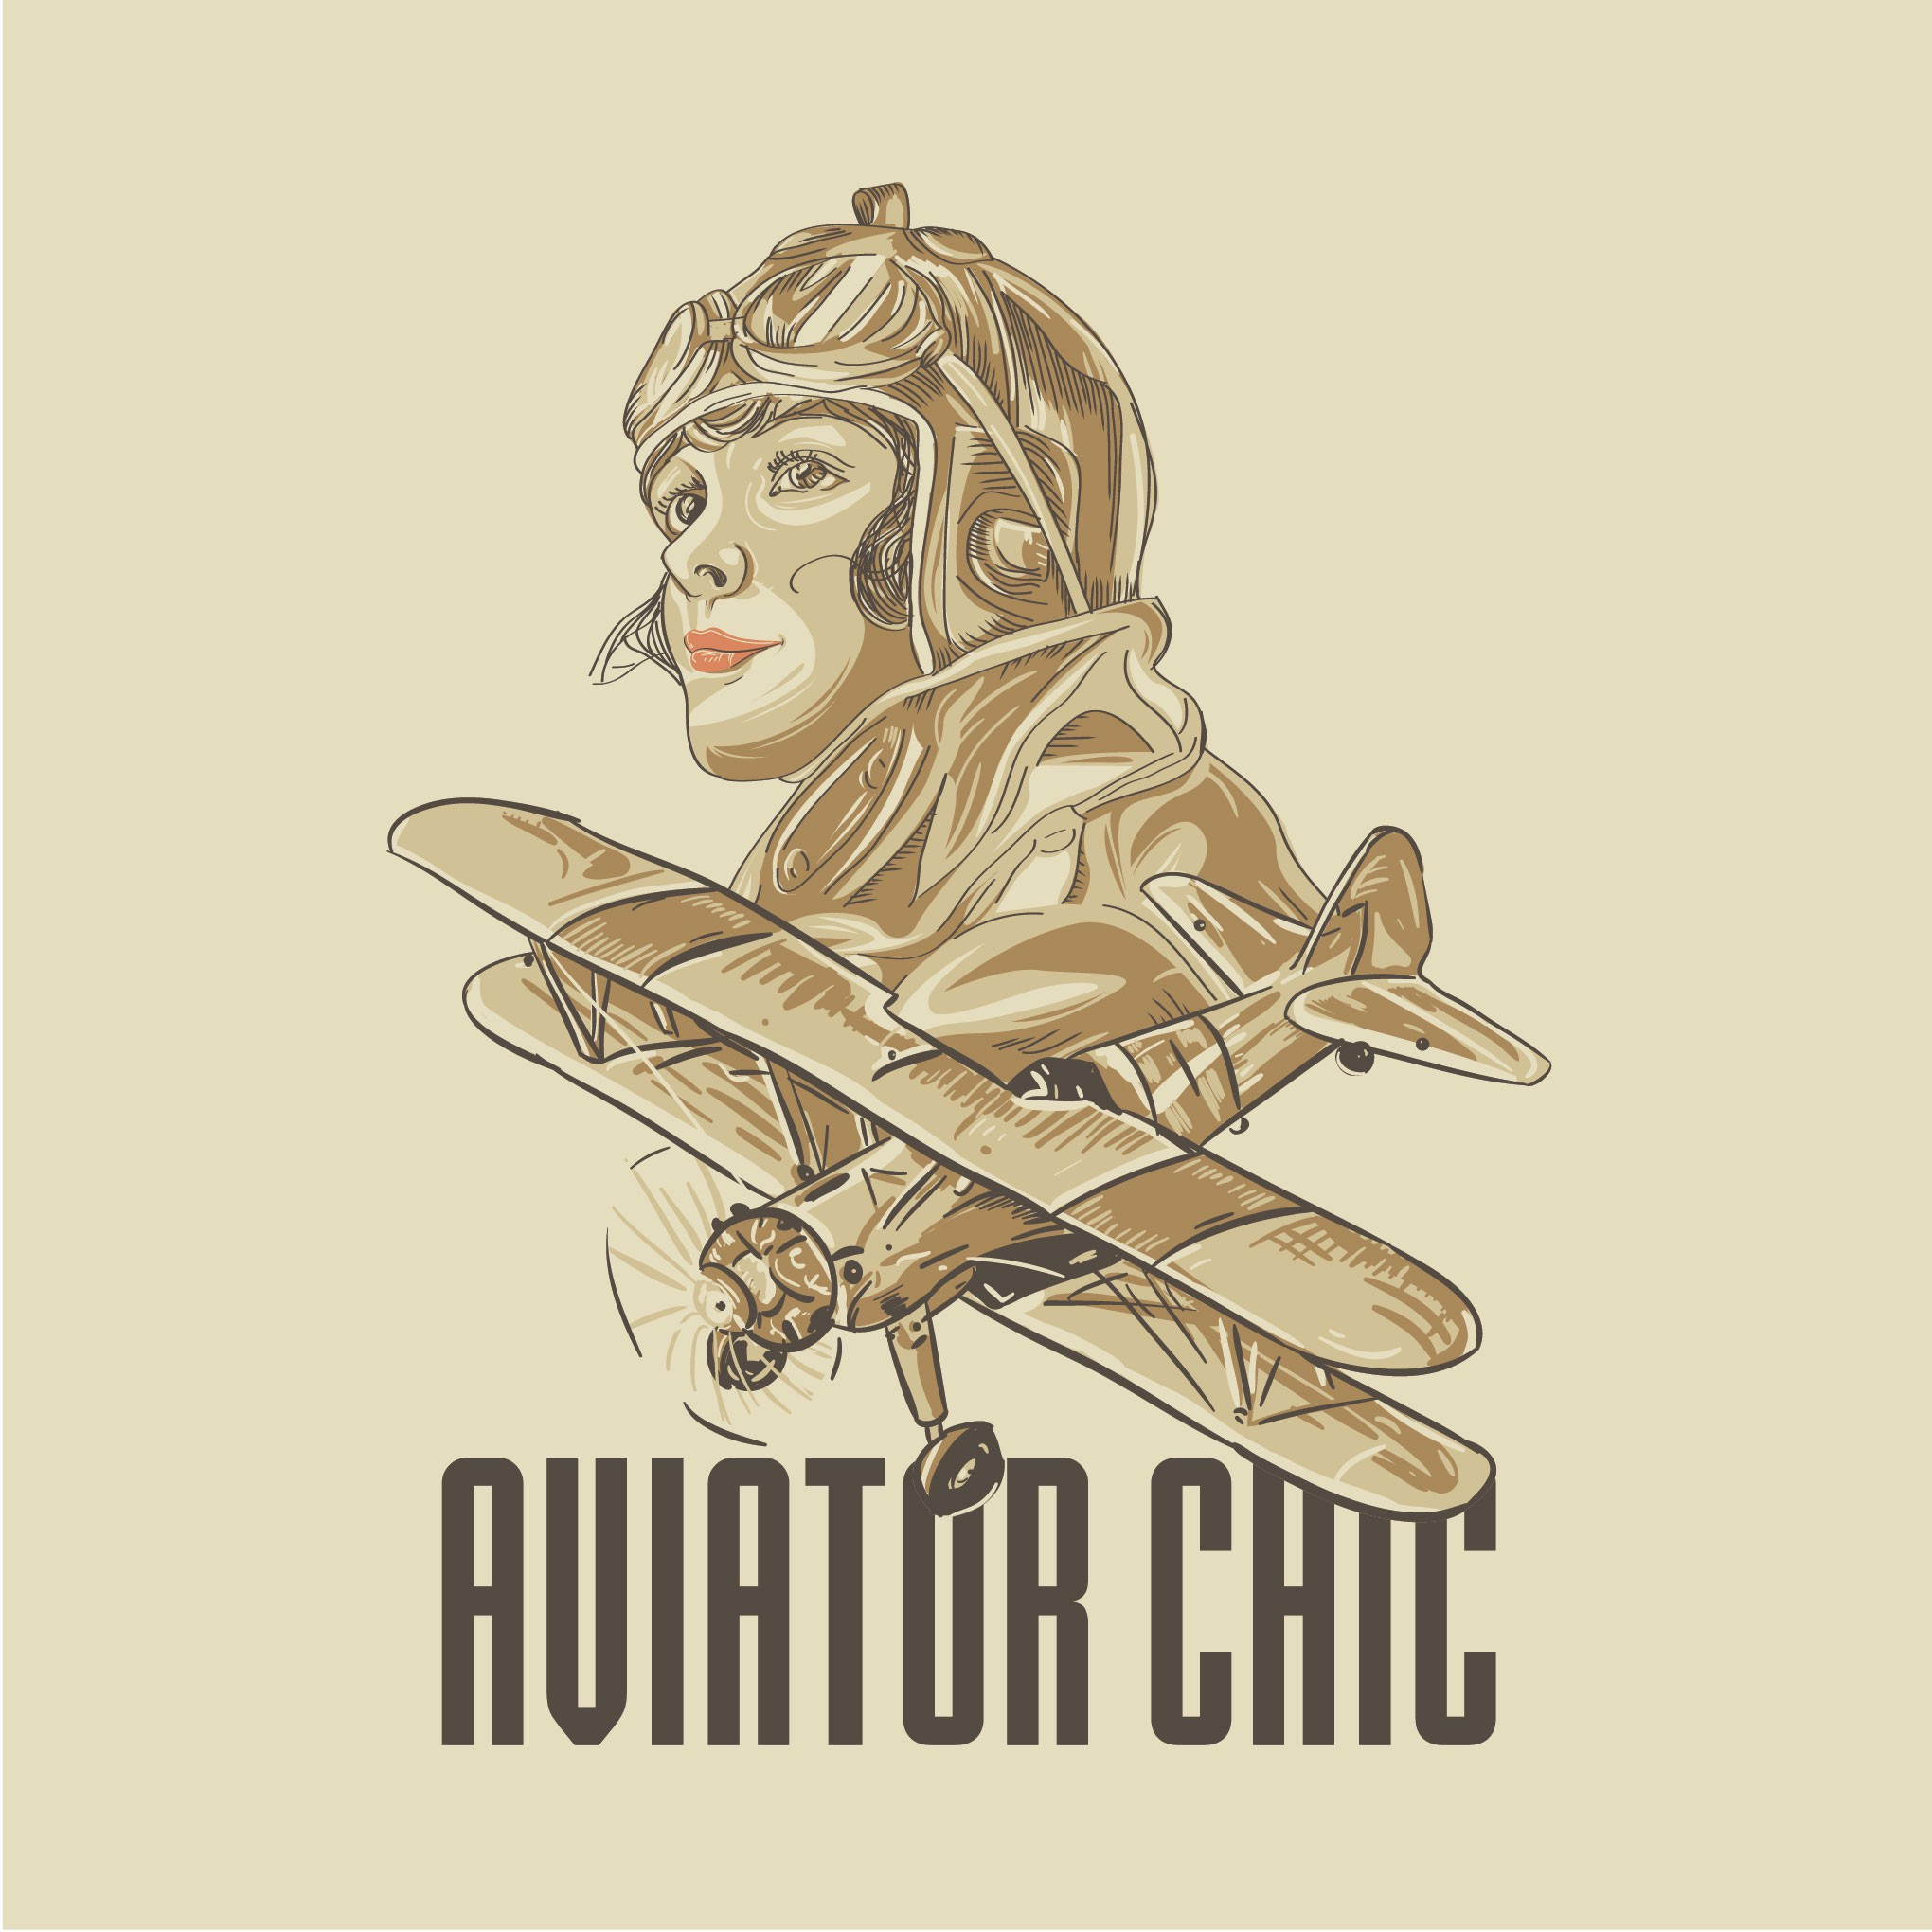 Needed:  Designs to Inspire Girls to Become Pilots for Aviator Chic